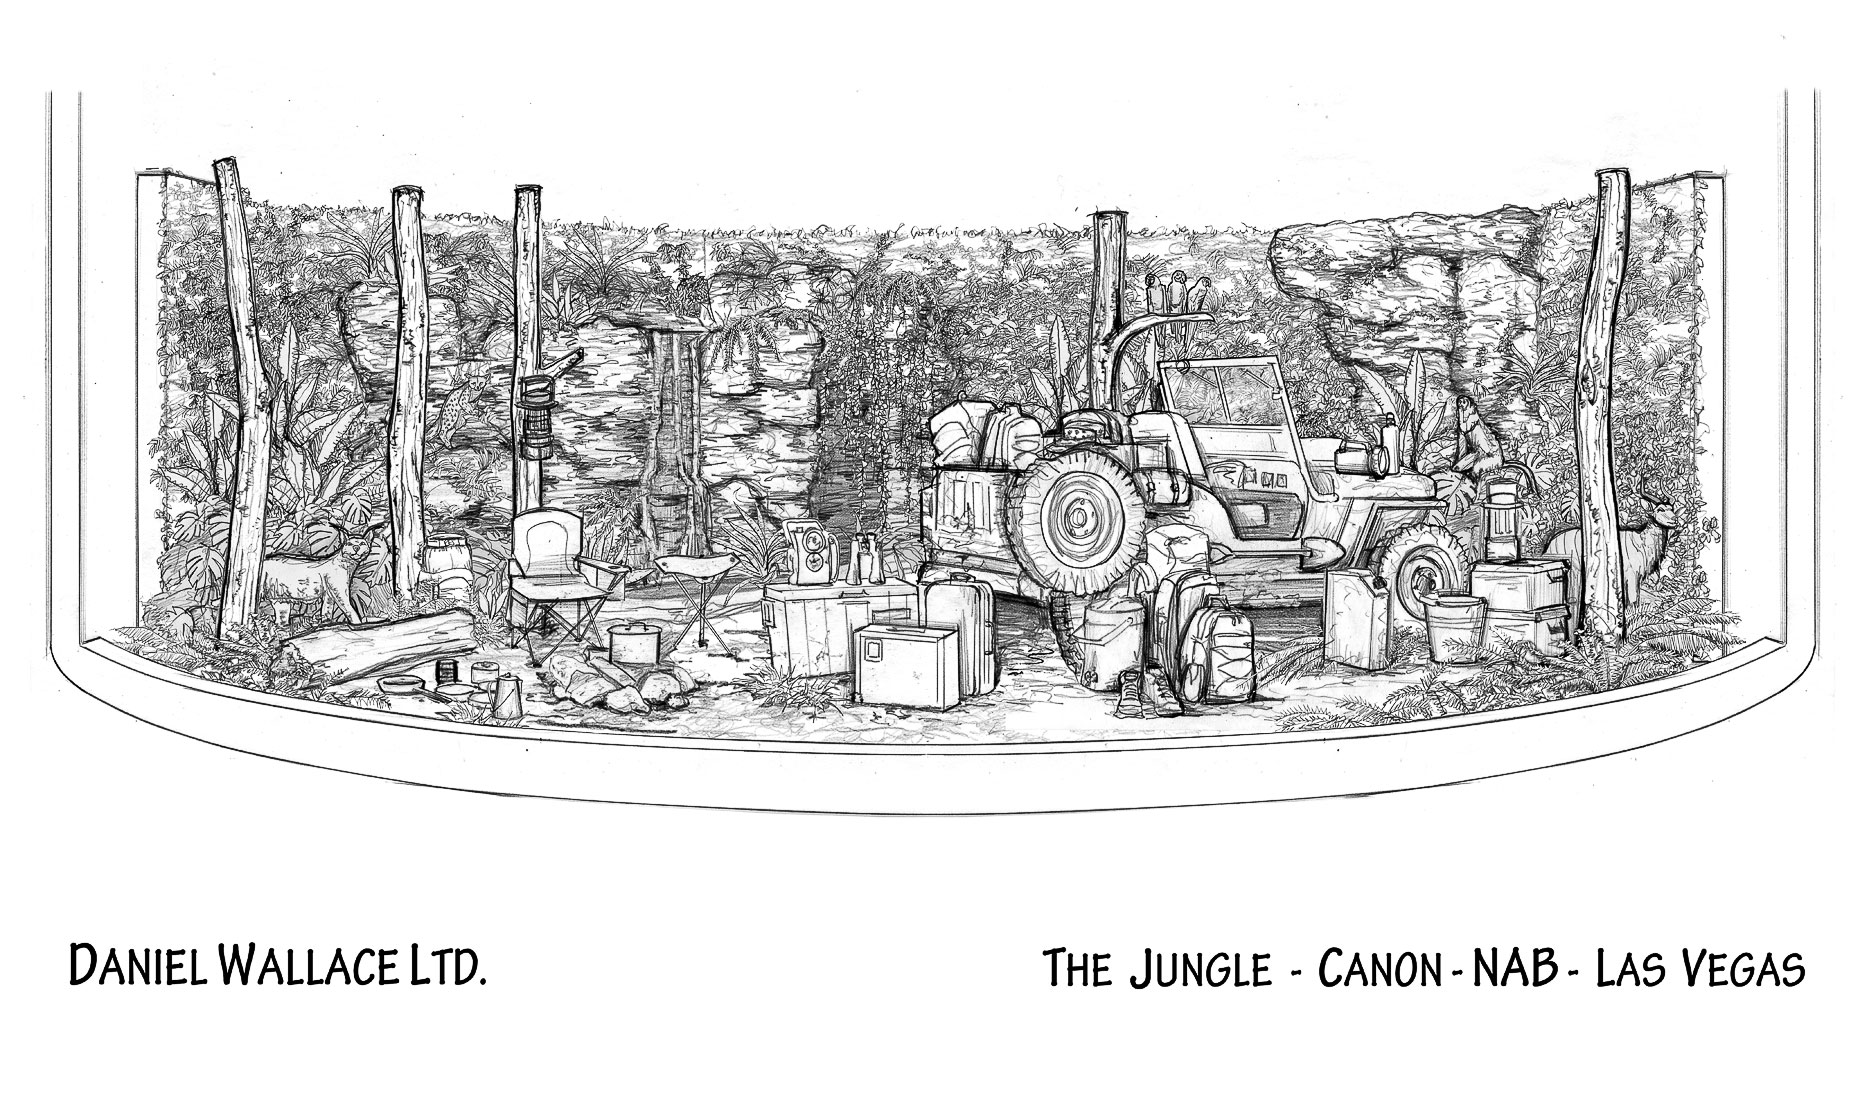 Canon jungle 2104 v2012